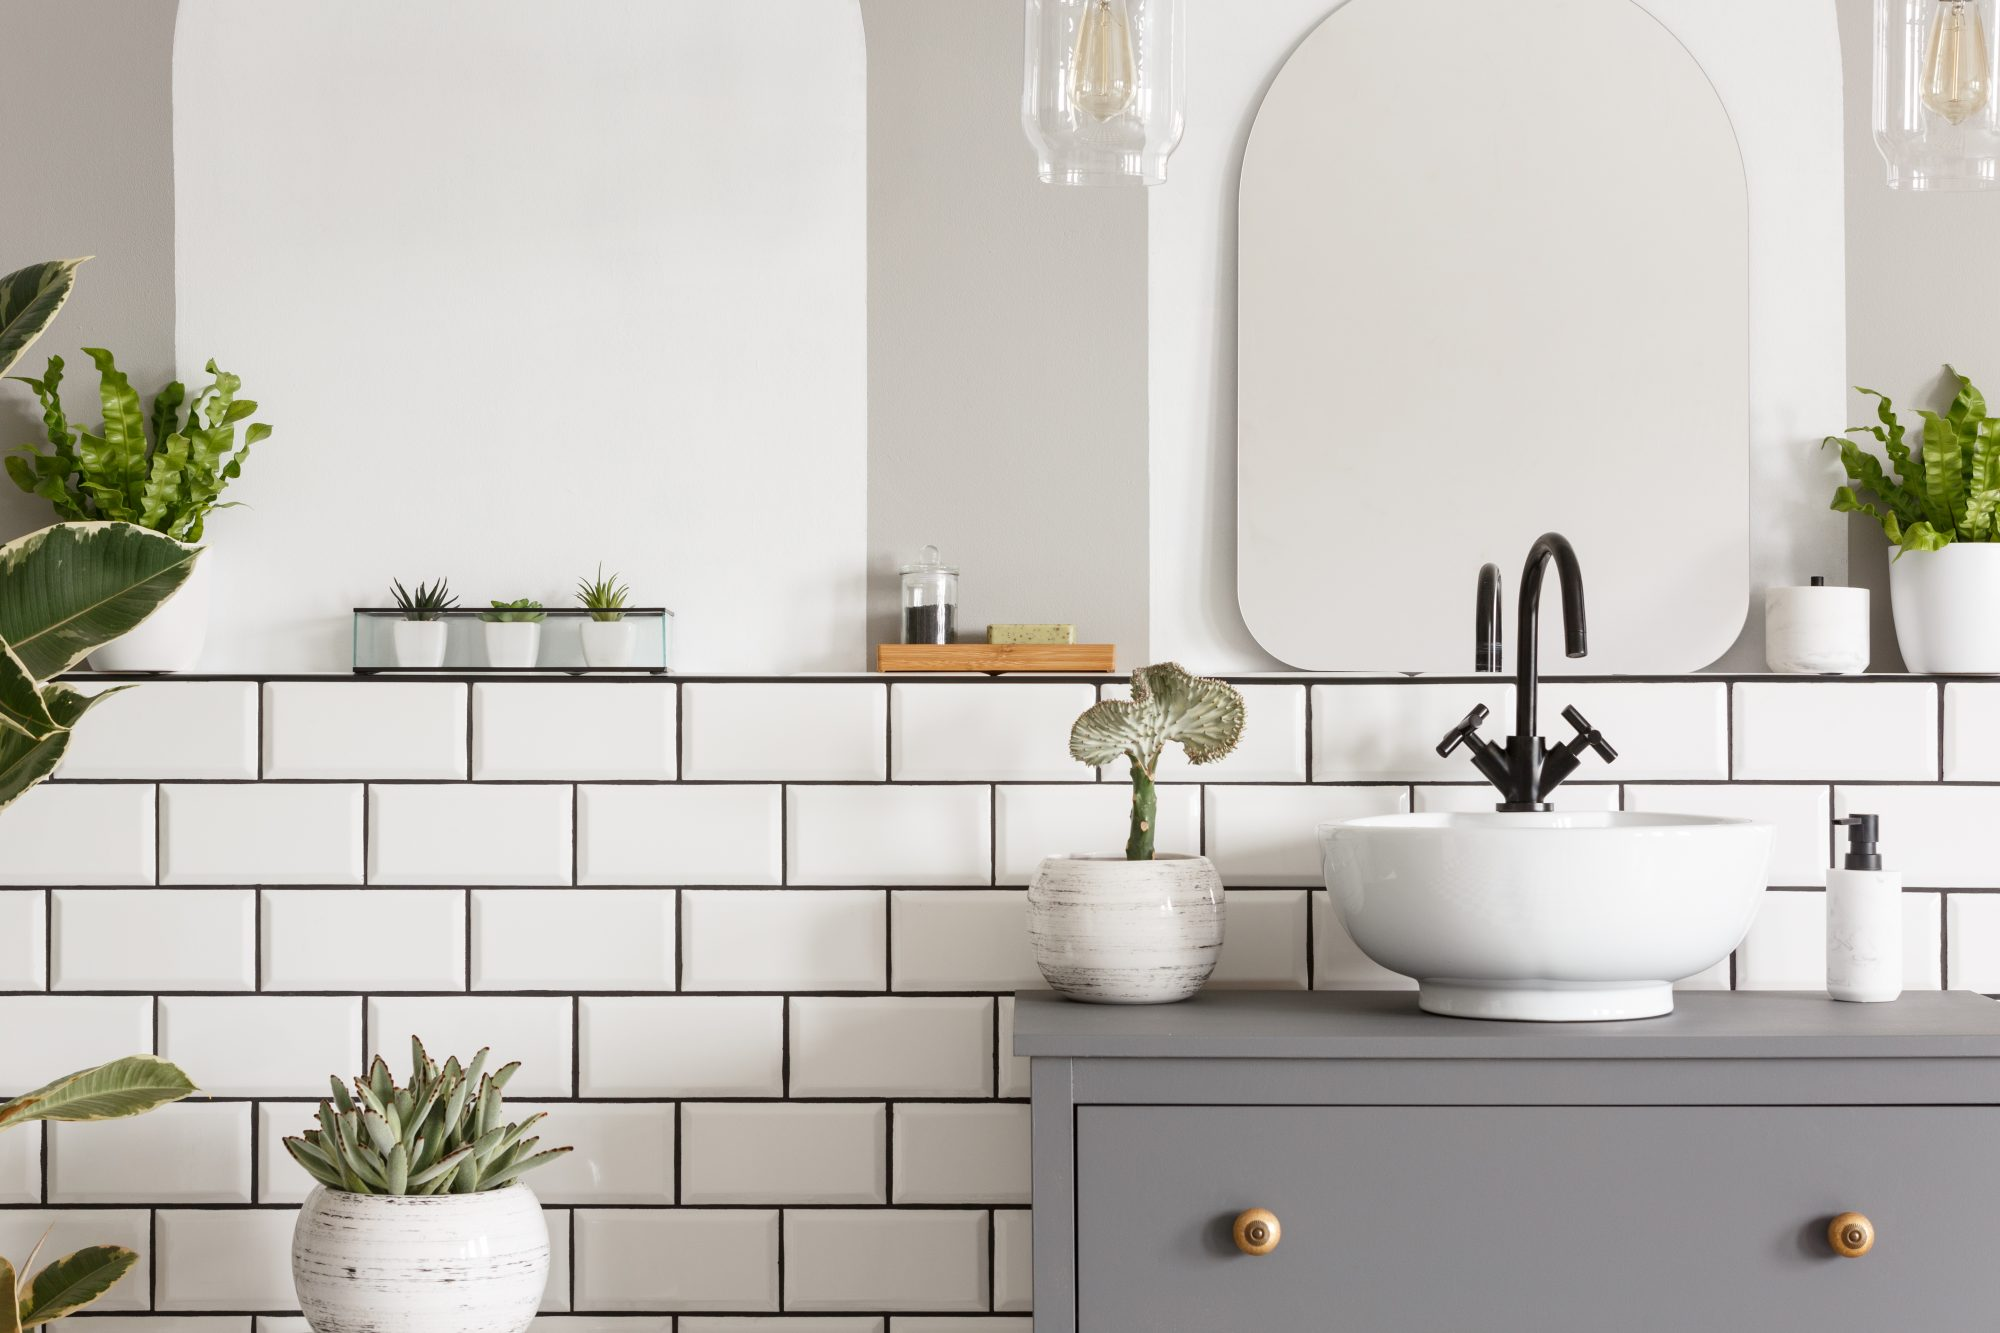 bathroom decorating ideas timeless bathroom decor trends that will never go out of style bathroom decorating ideas marvel timeless bathroom decor trends that